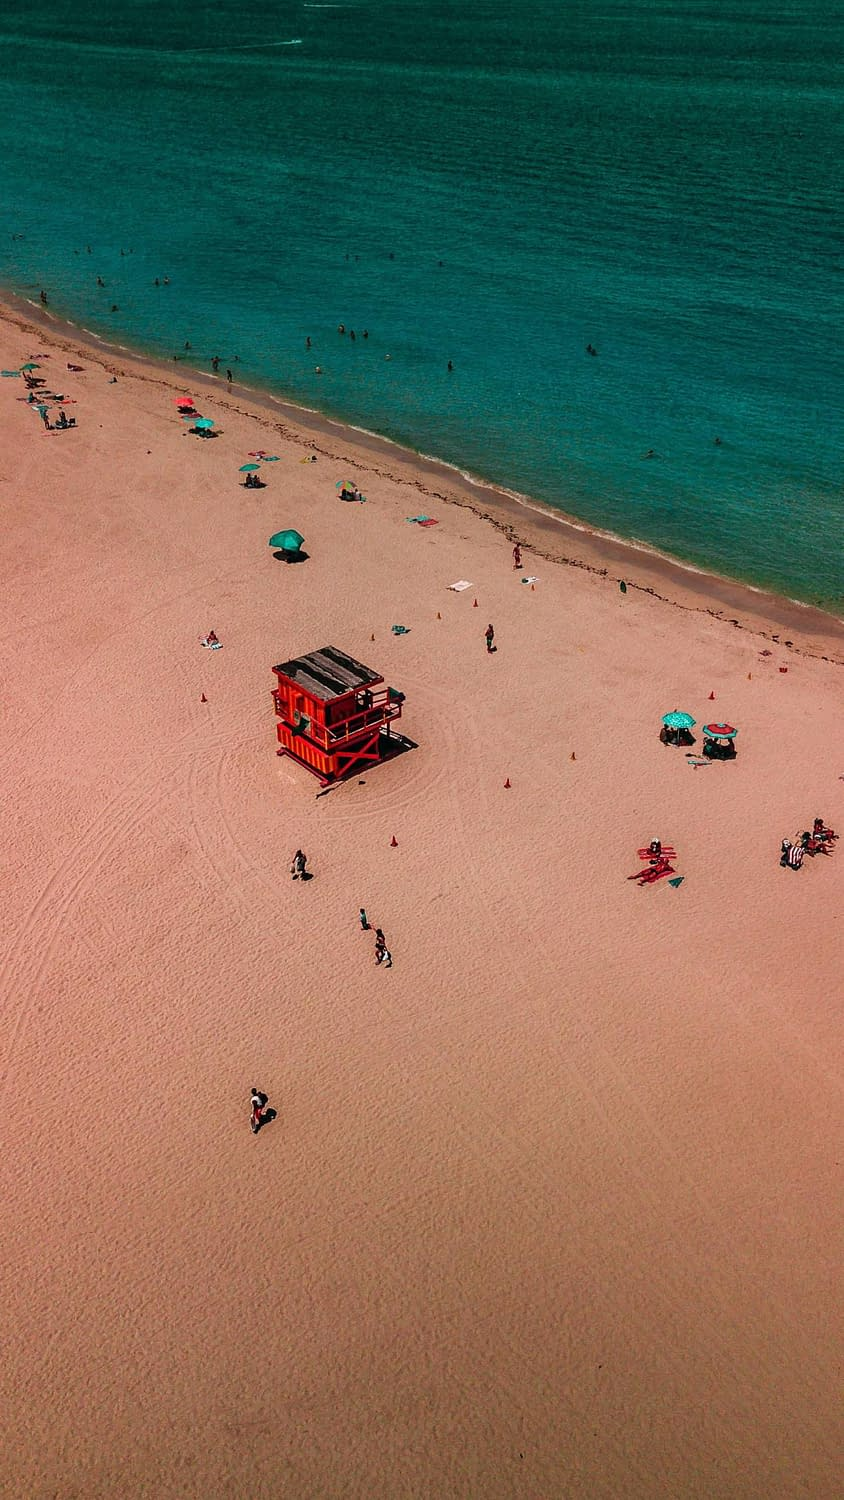 Drone shot of South Beach in Miami with the Iconic Pink Life Guard shack